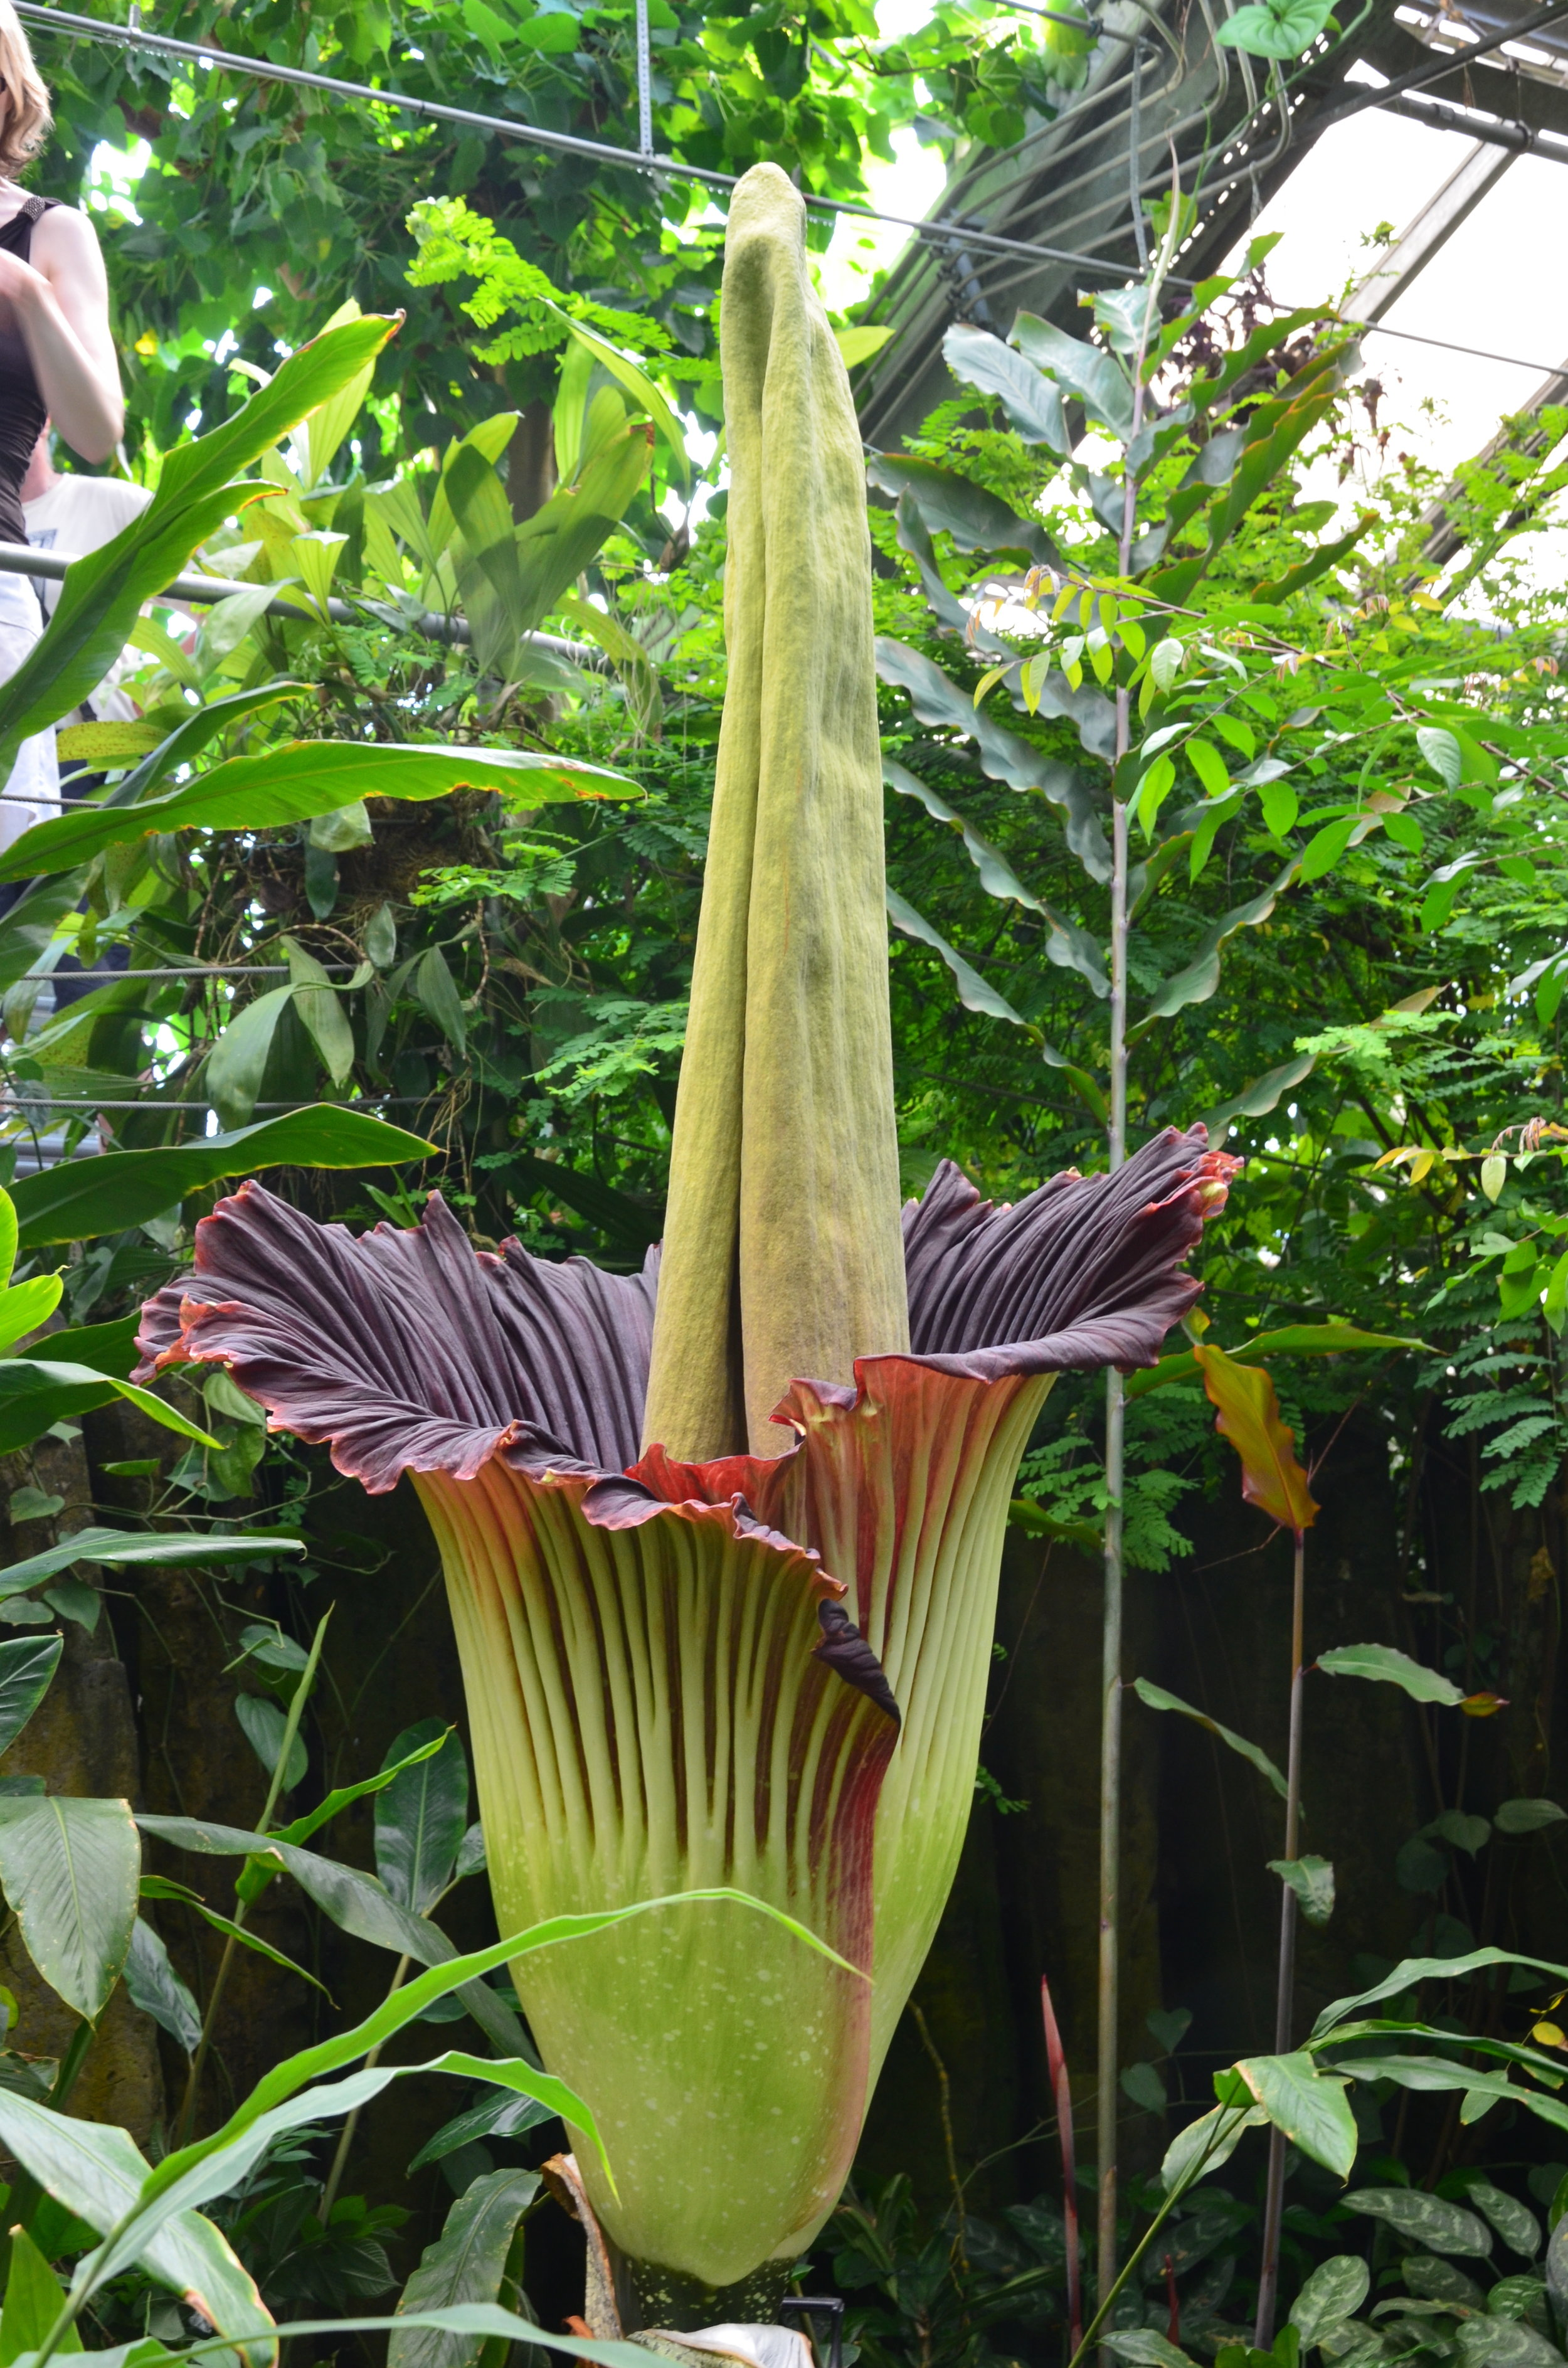 The world's largest inflorescence belongs to the titan arum ( Amorphophallus titanum ) and it too produces heat.